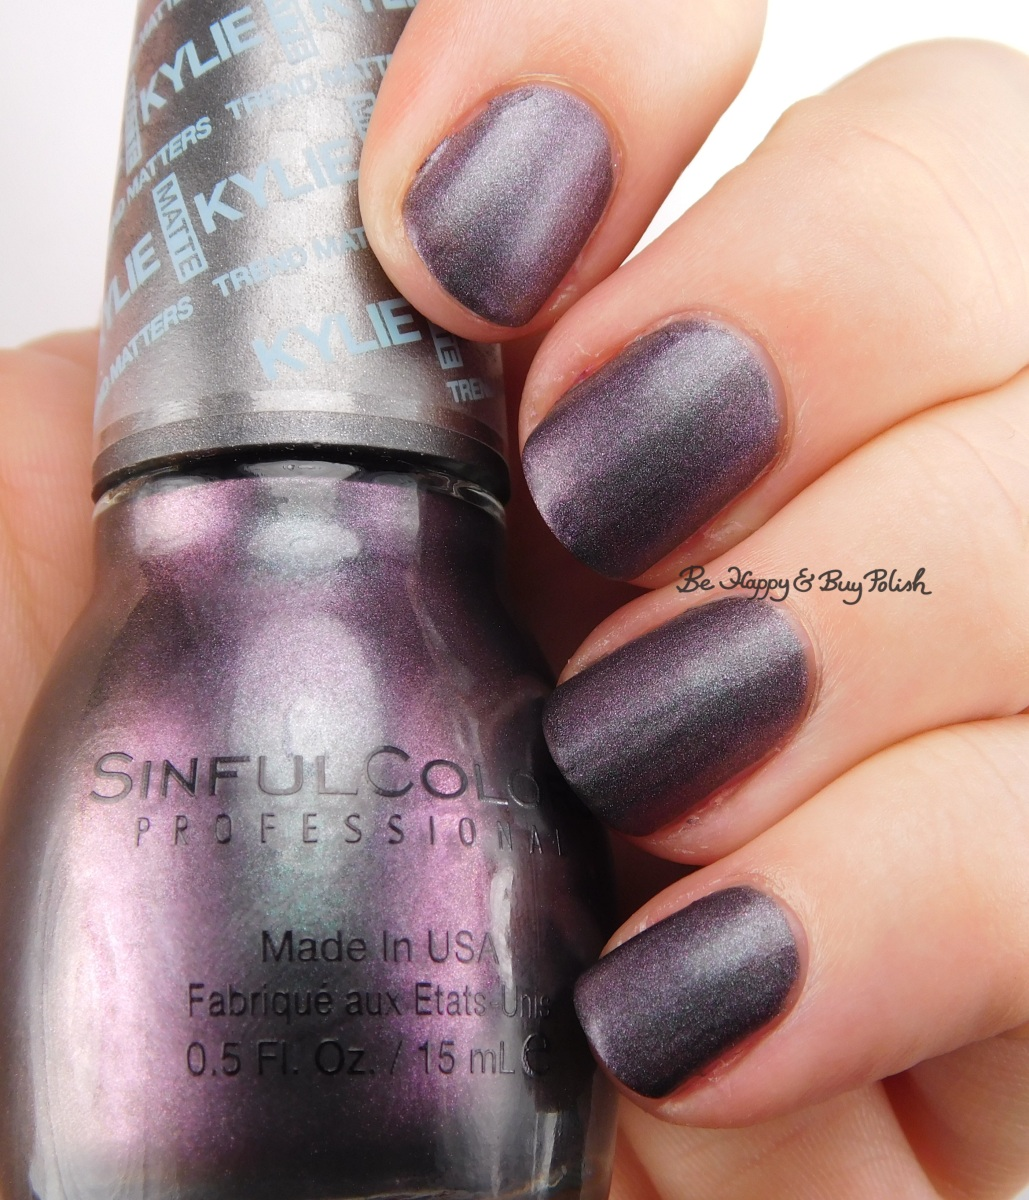 Sinful Colors Konstellation nail polish swatch + review [Kylie Trend Matters collection]